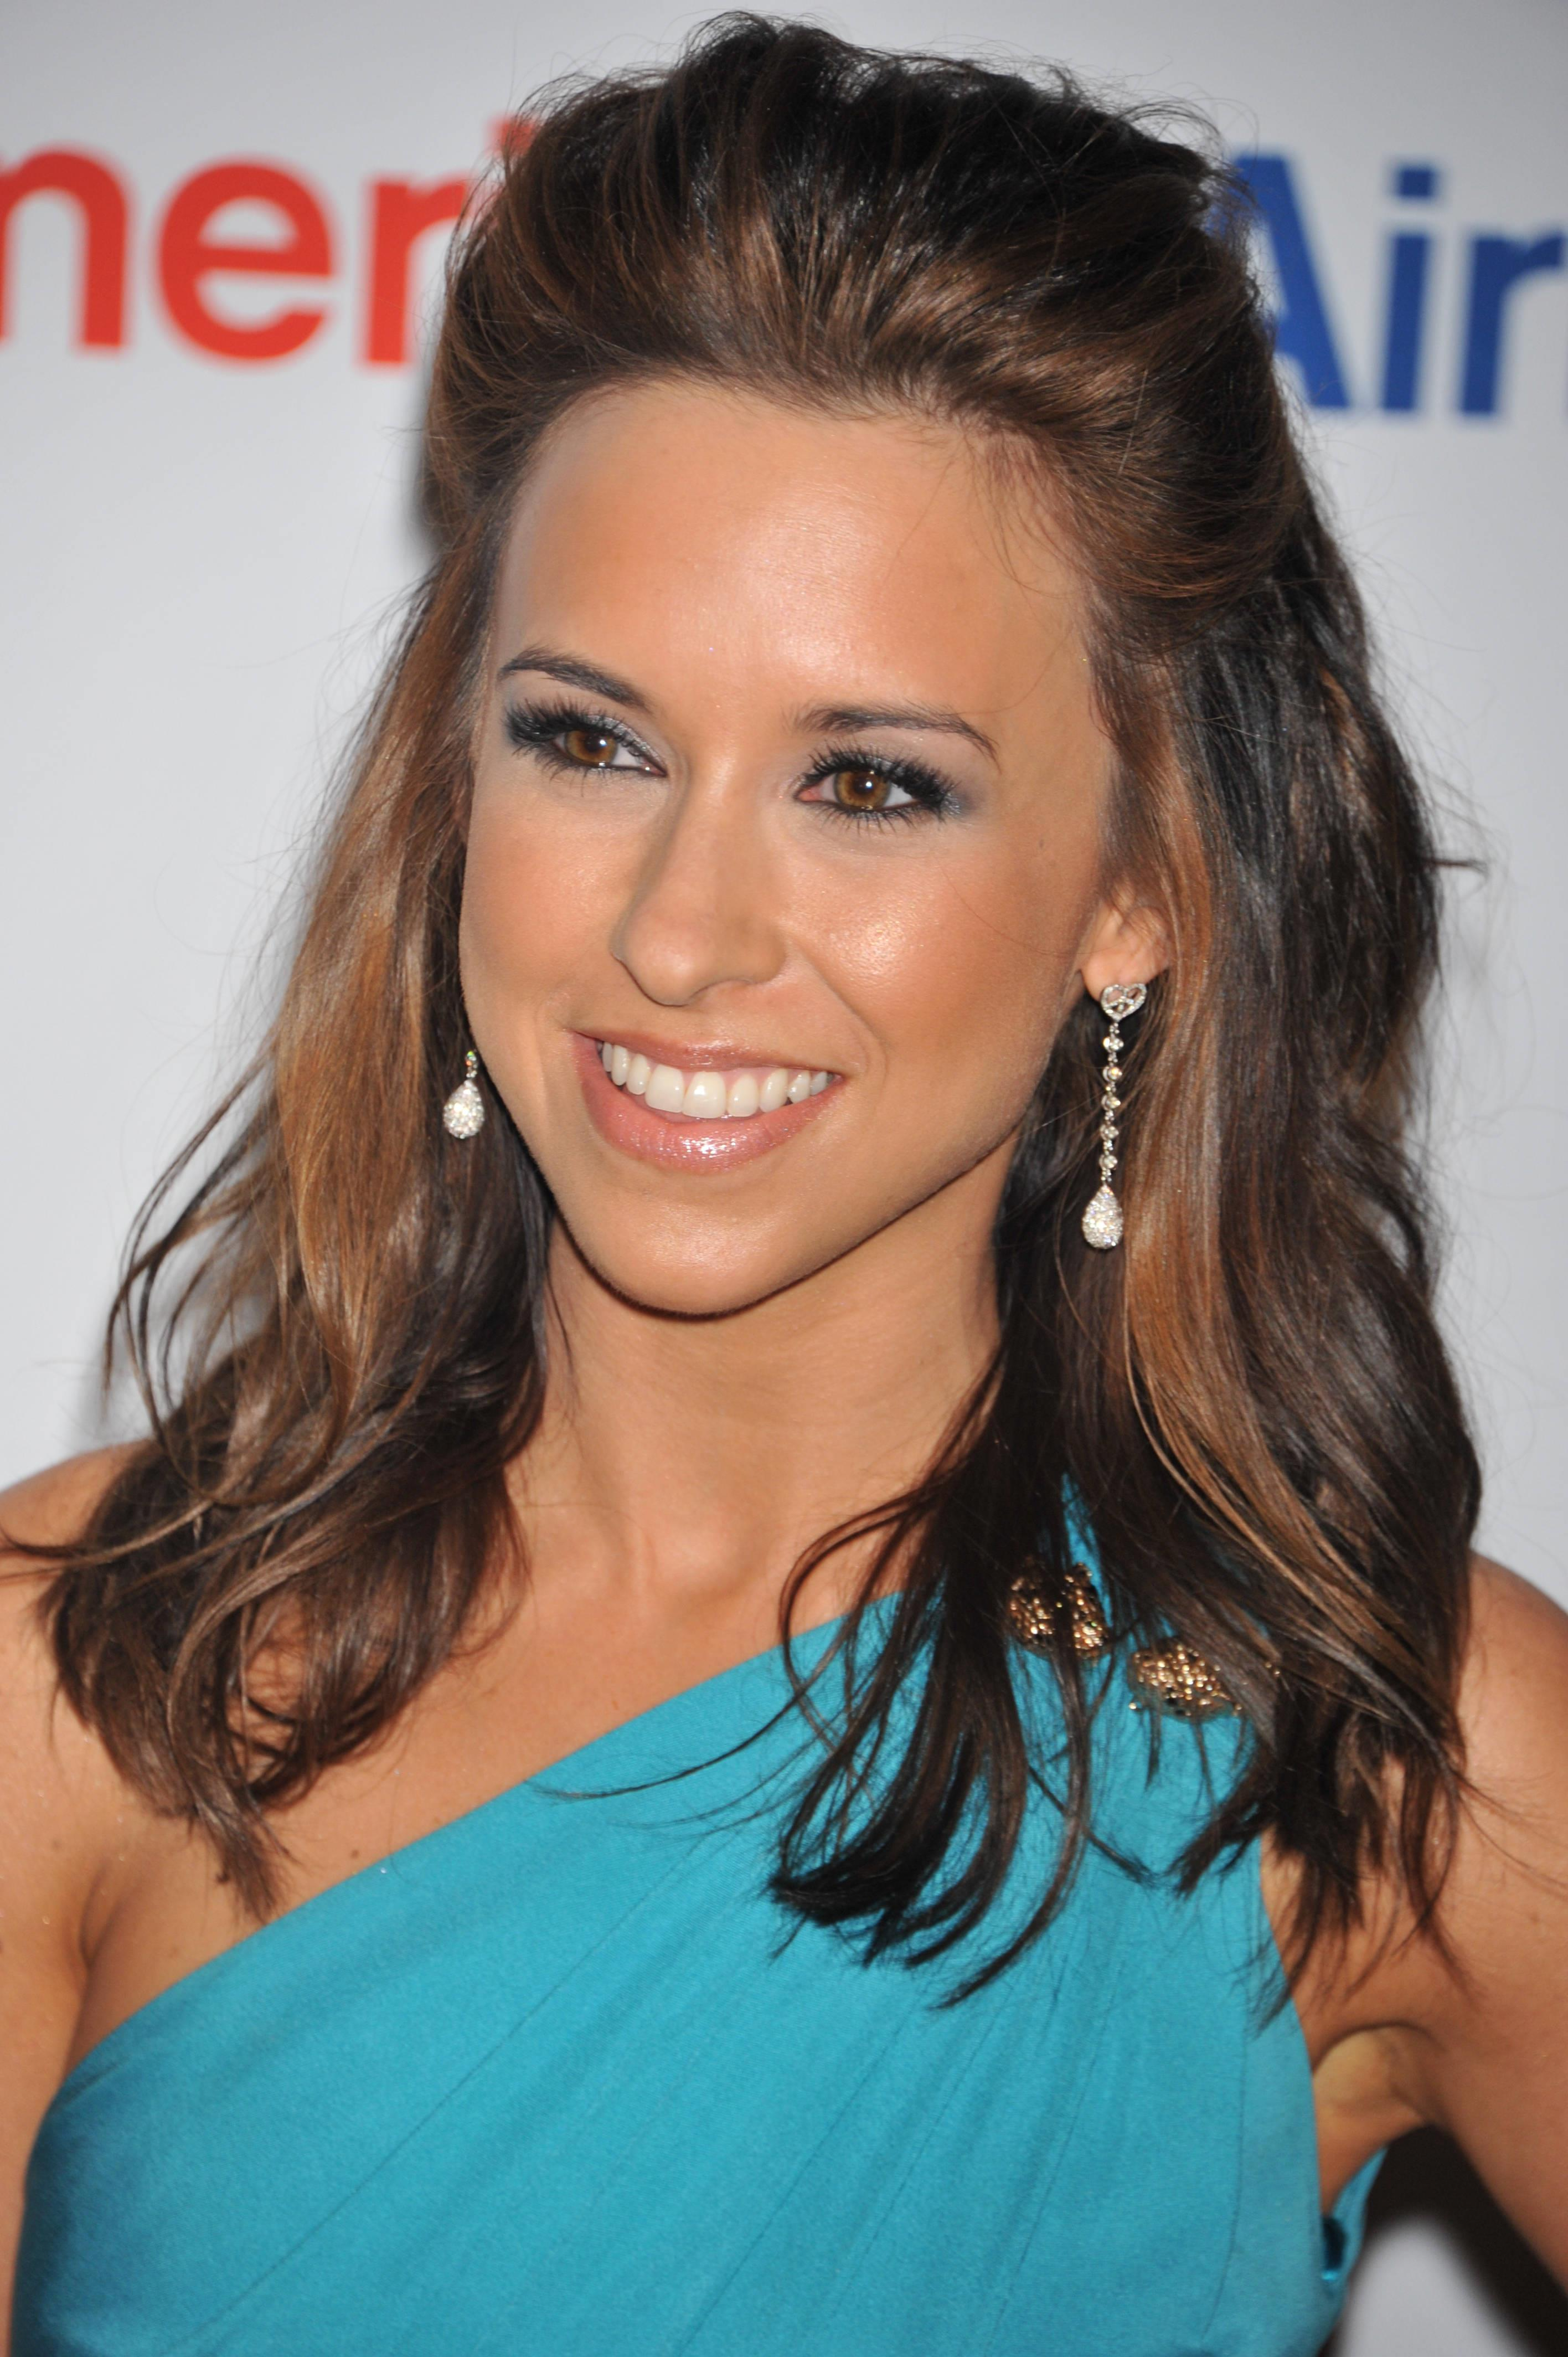 Lacey Chabert Pictures Race To Erase Ms Event In Century City 051812 Hotness -4157